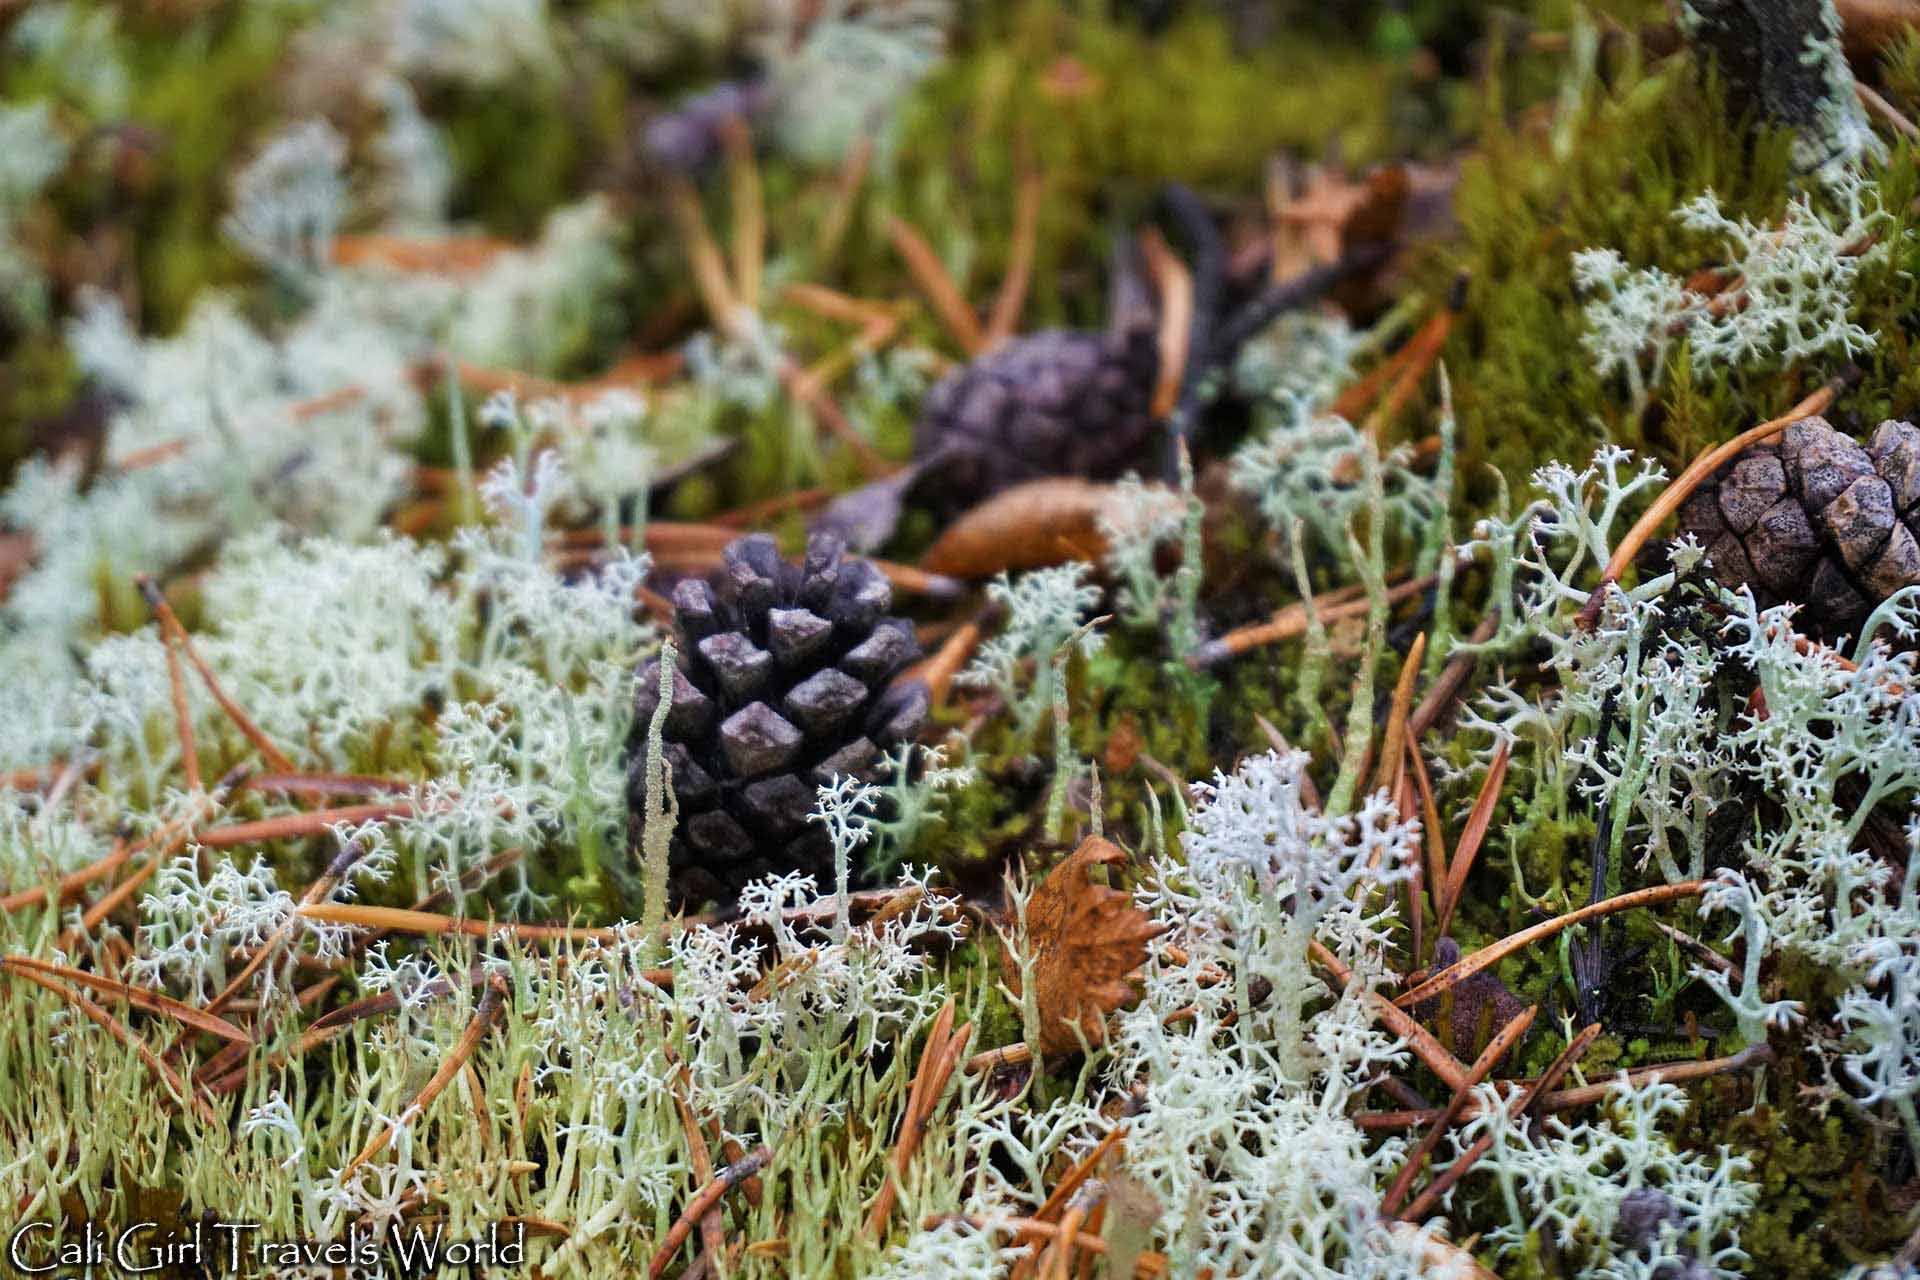 Pinecones among the lichen of the Finnish forest.